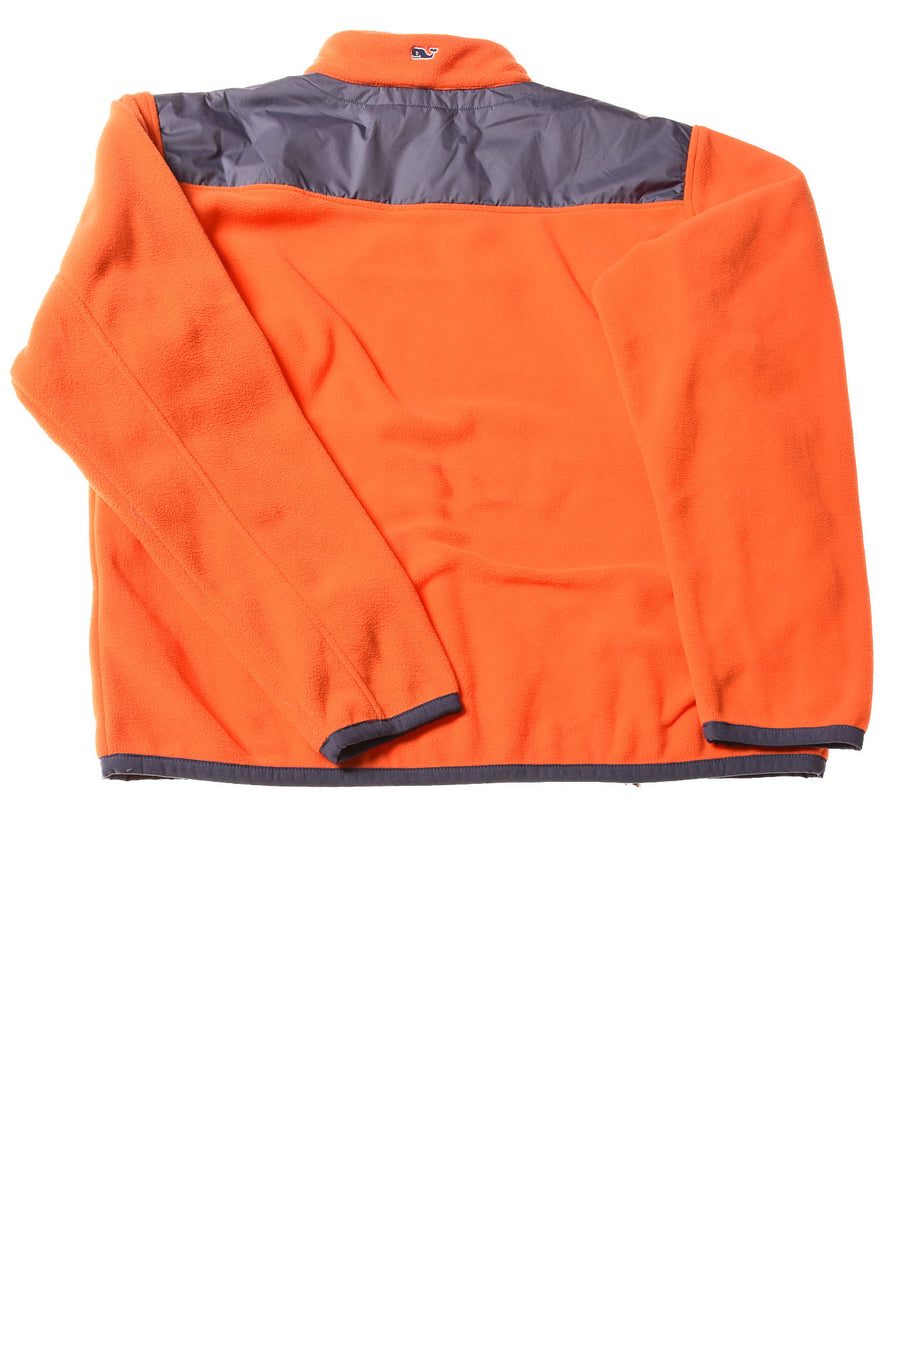 NEW Vineyard Vines Men's Shirt X-Large Orange